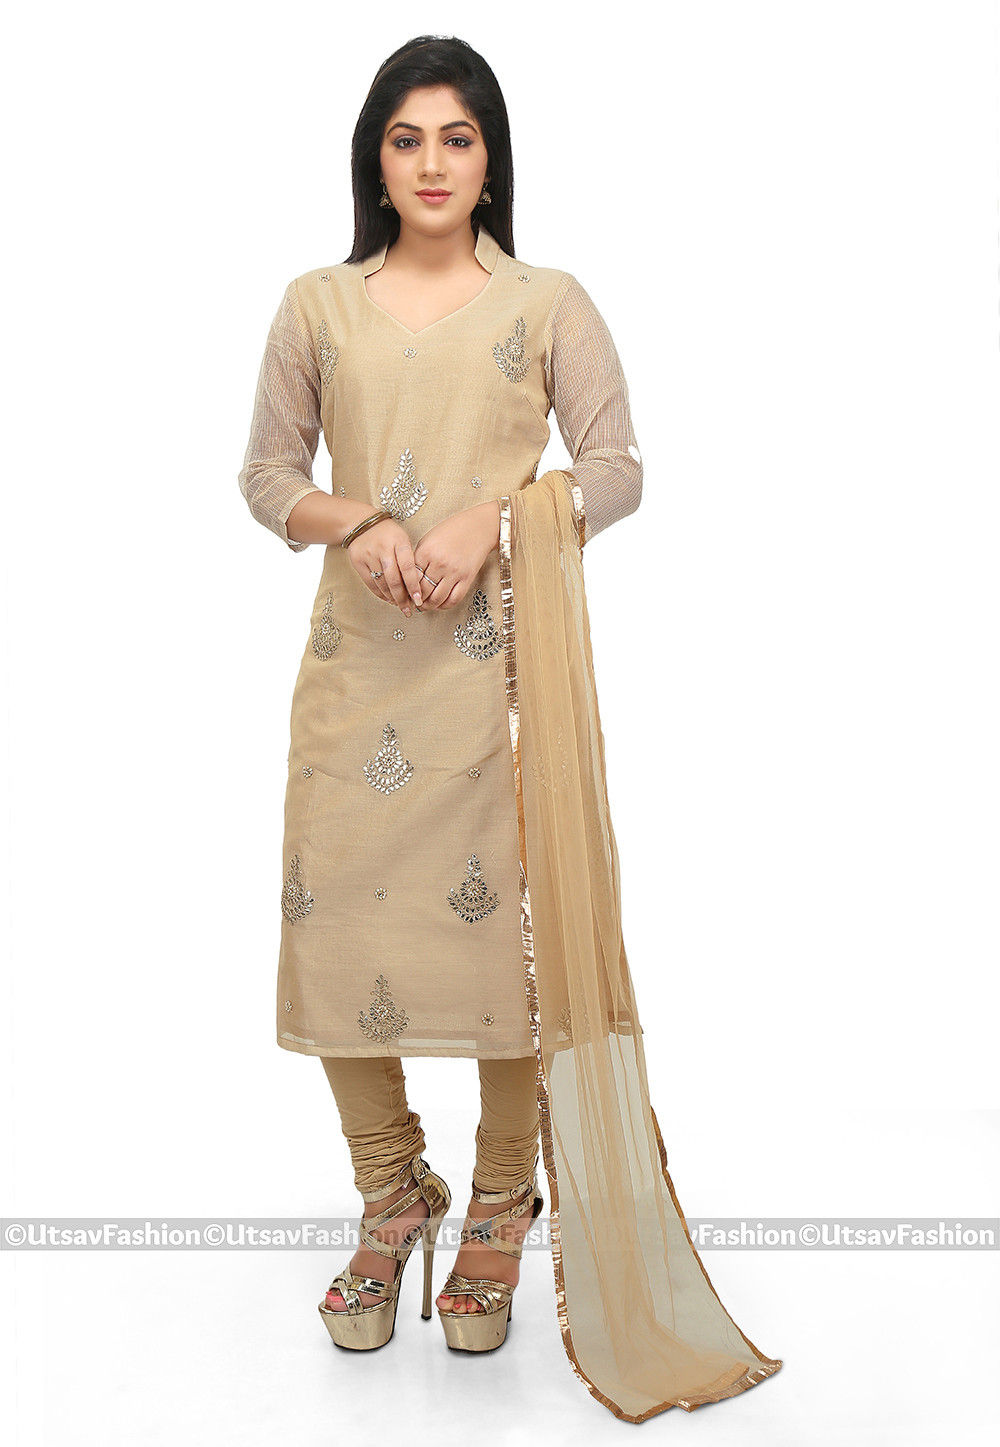 Embroidered Chanderi Cotton Straight Suit in Beige